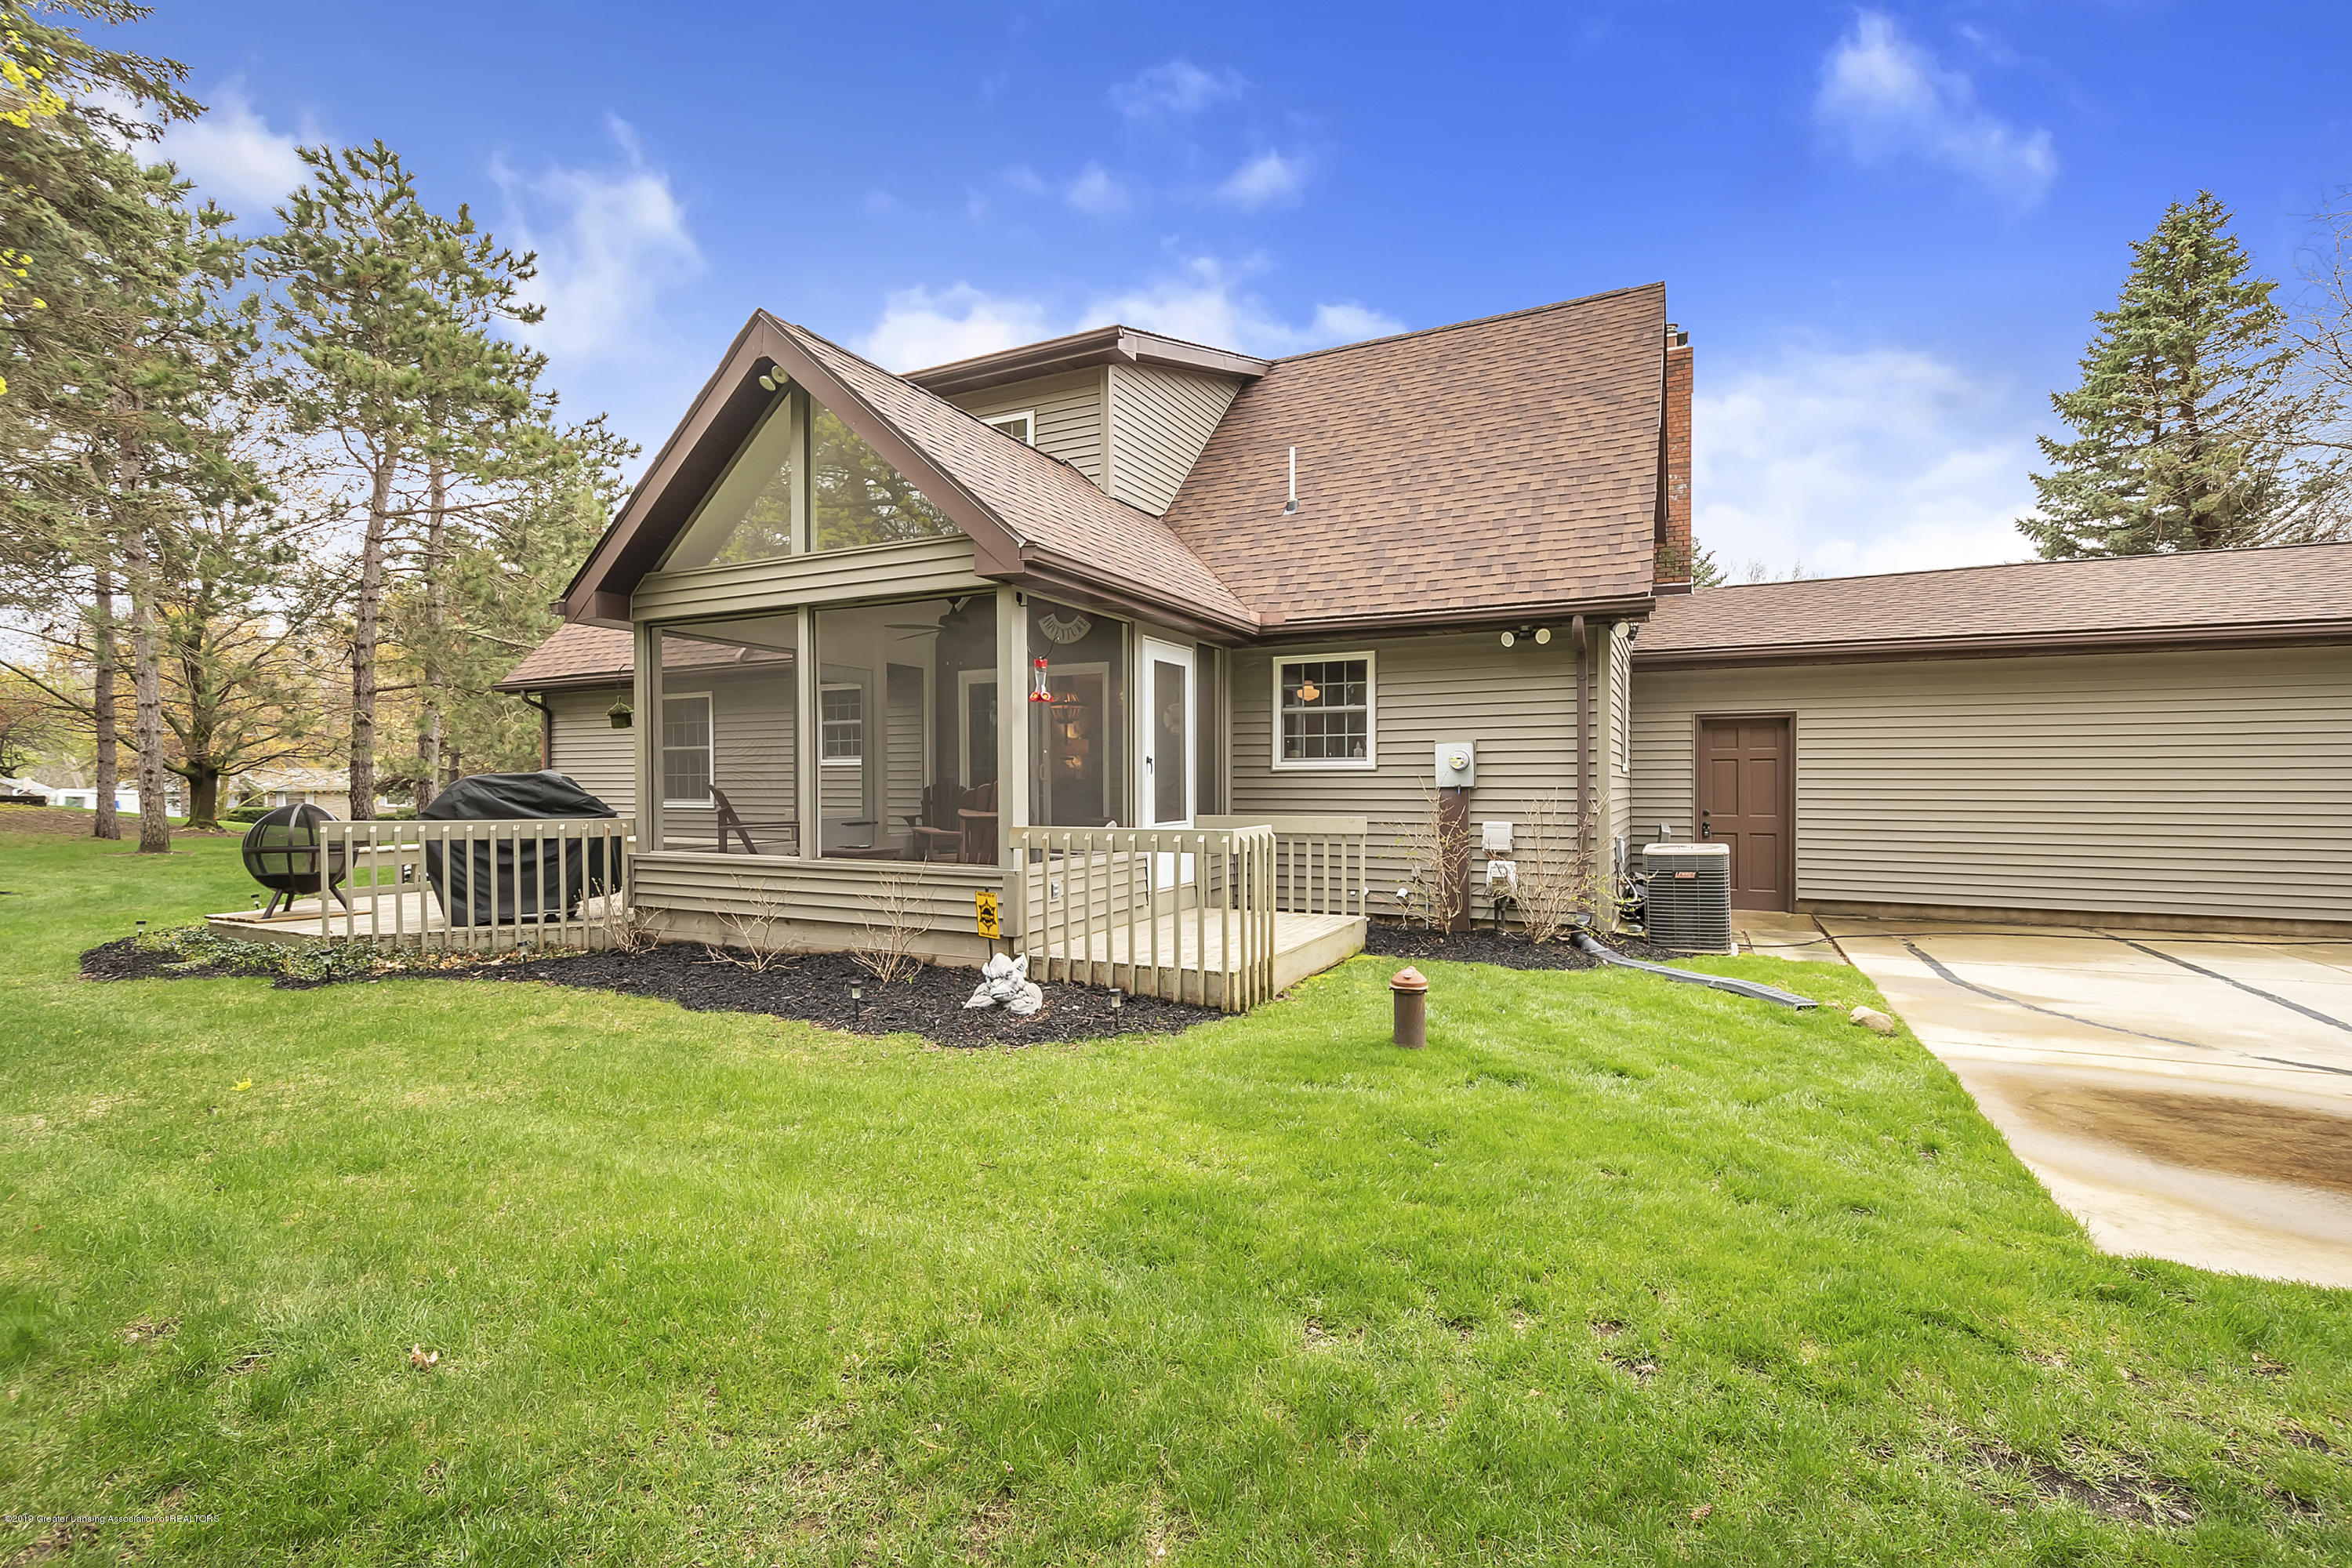 5075 Lake Dr - 5075-Lake-Dr-Owosso-windowstill-39 - 38